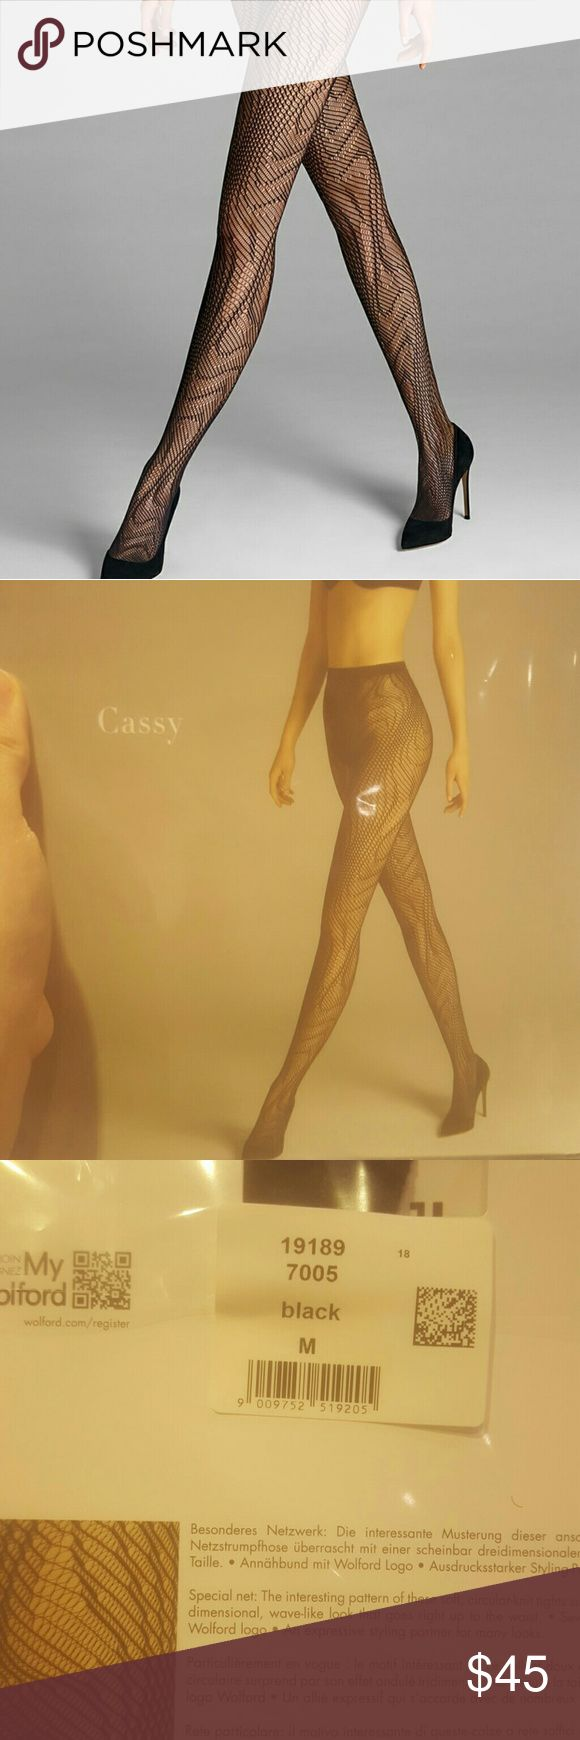 Brand New Wolford Cassy Tights Never opened and in original packaging! Black Fishnets tights Wolford  Other